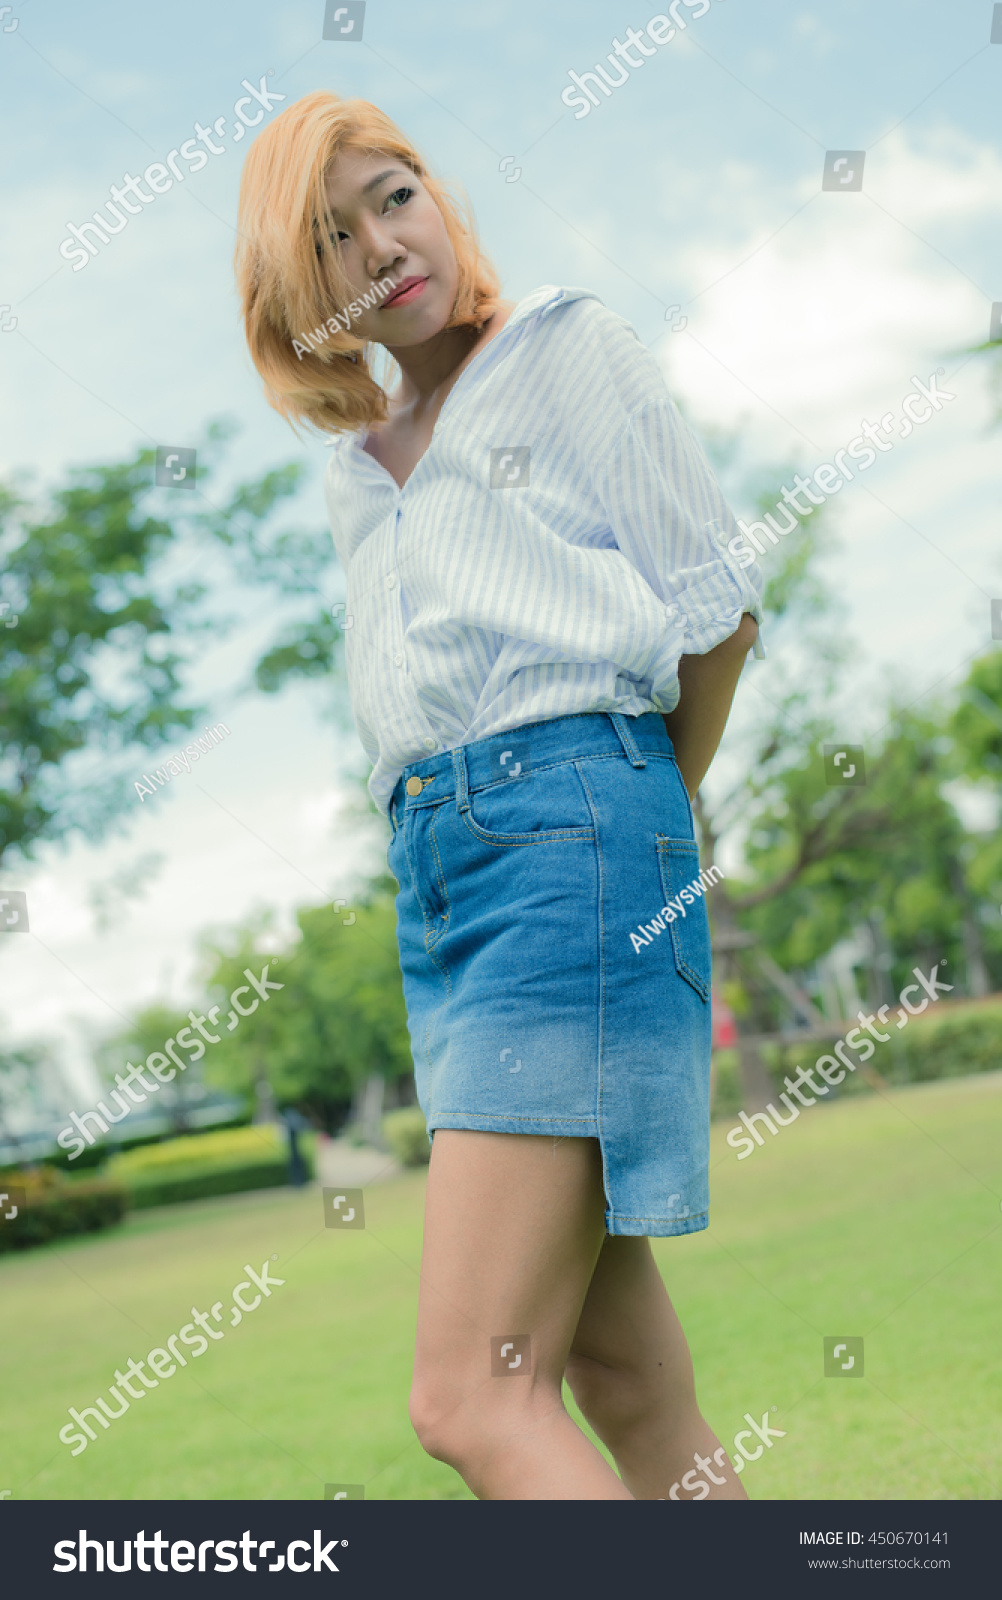 d09c9a0ea Summer Outfits With Jean Skirts